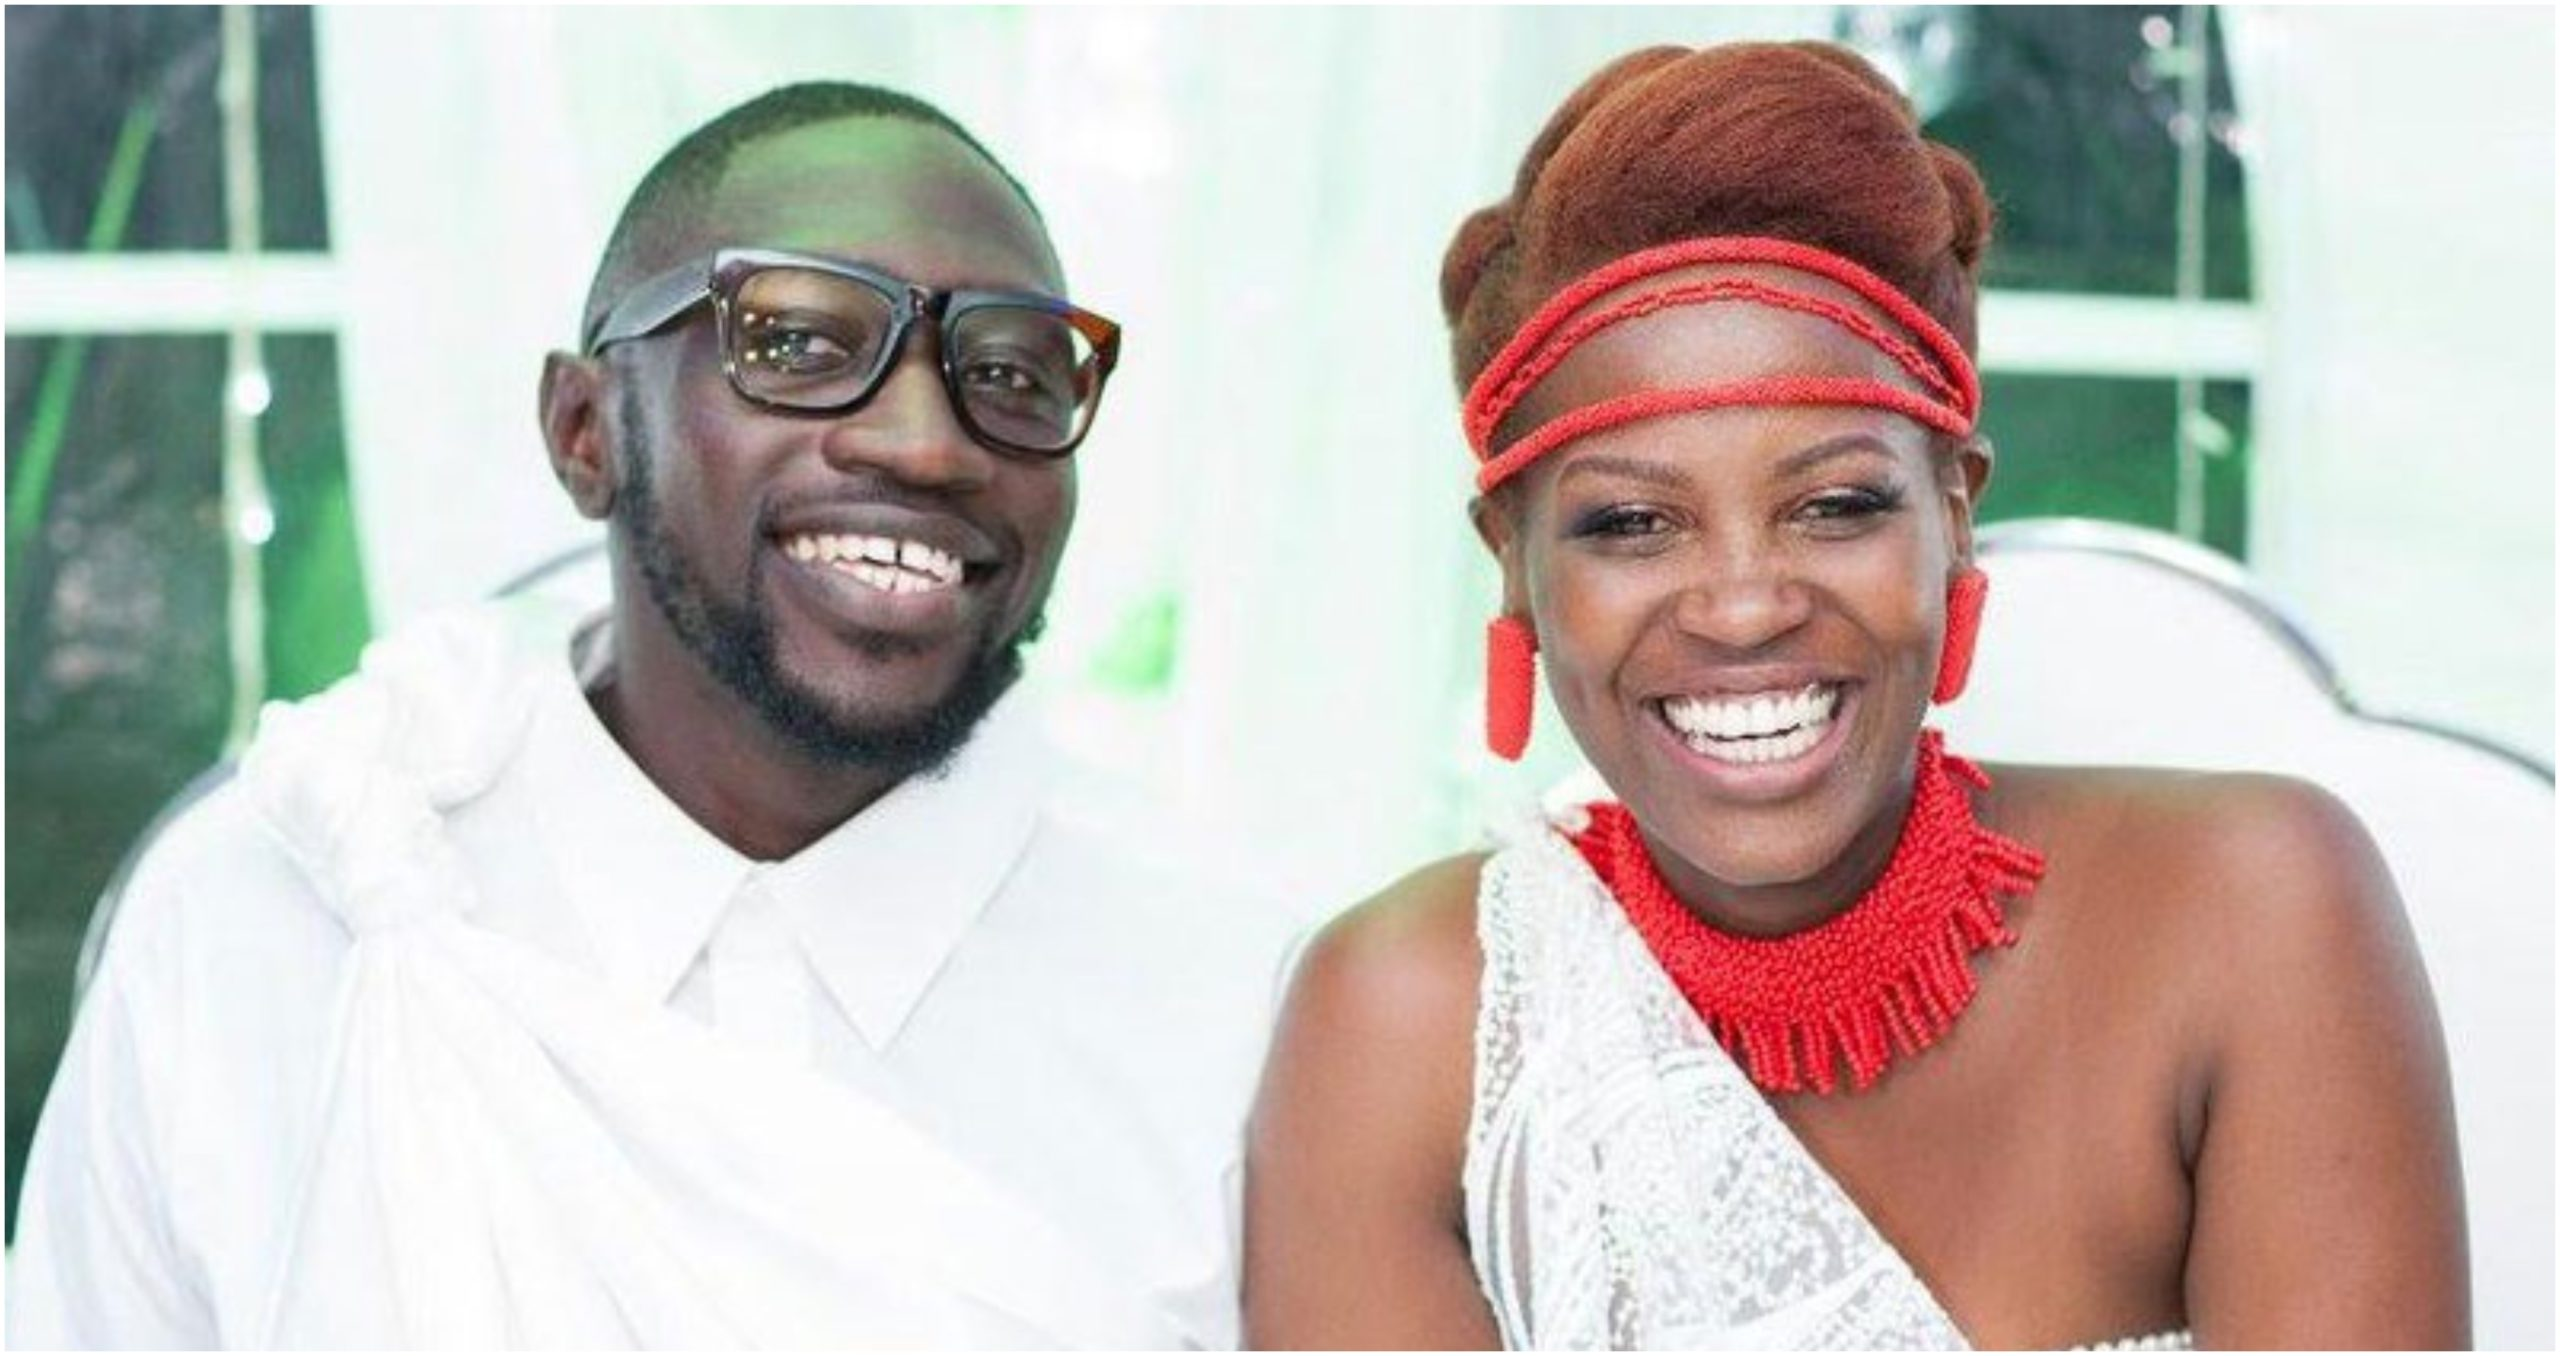 Revealed! How Sauti Sol's Polycarp and his wife met in a case of mistaken identity (Video)